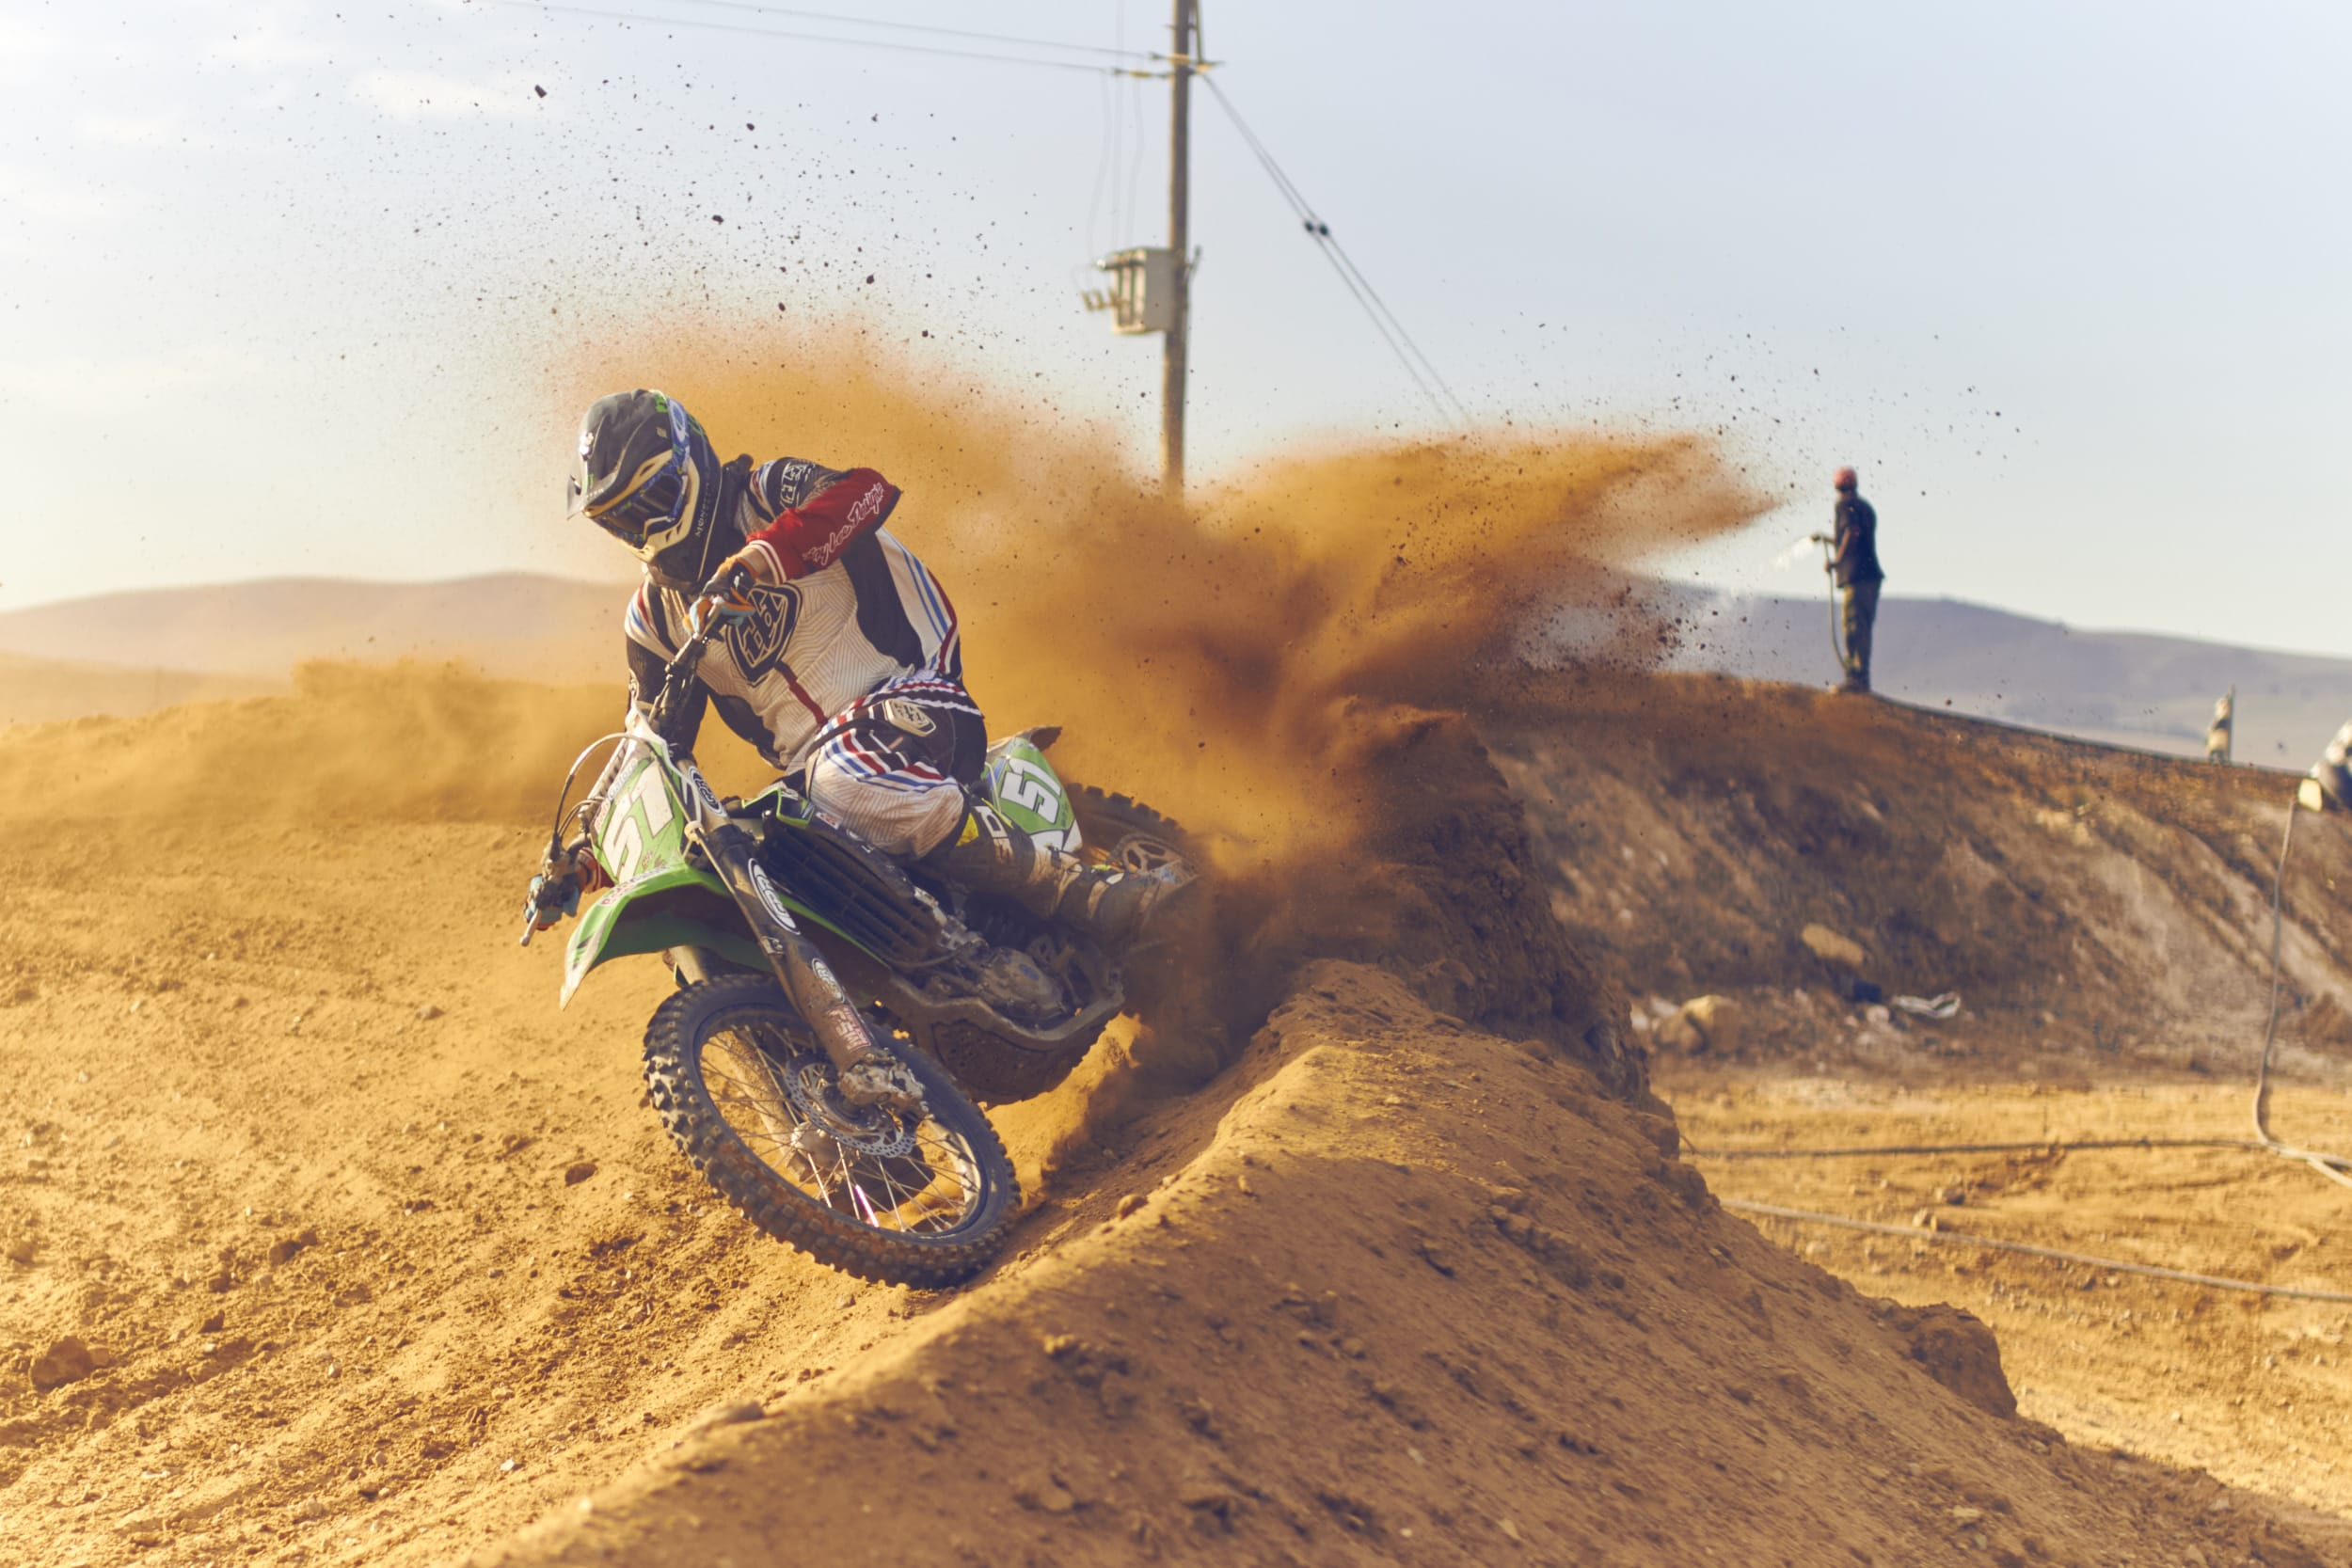 cpt_motorcross 388 ©martinsass